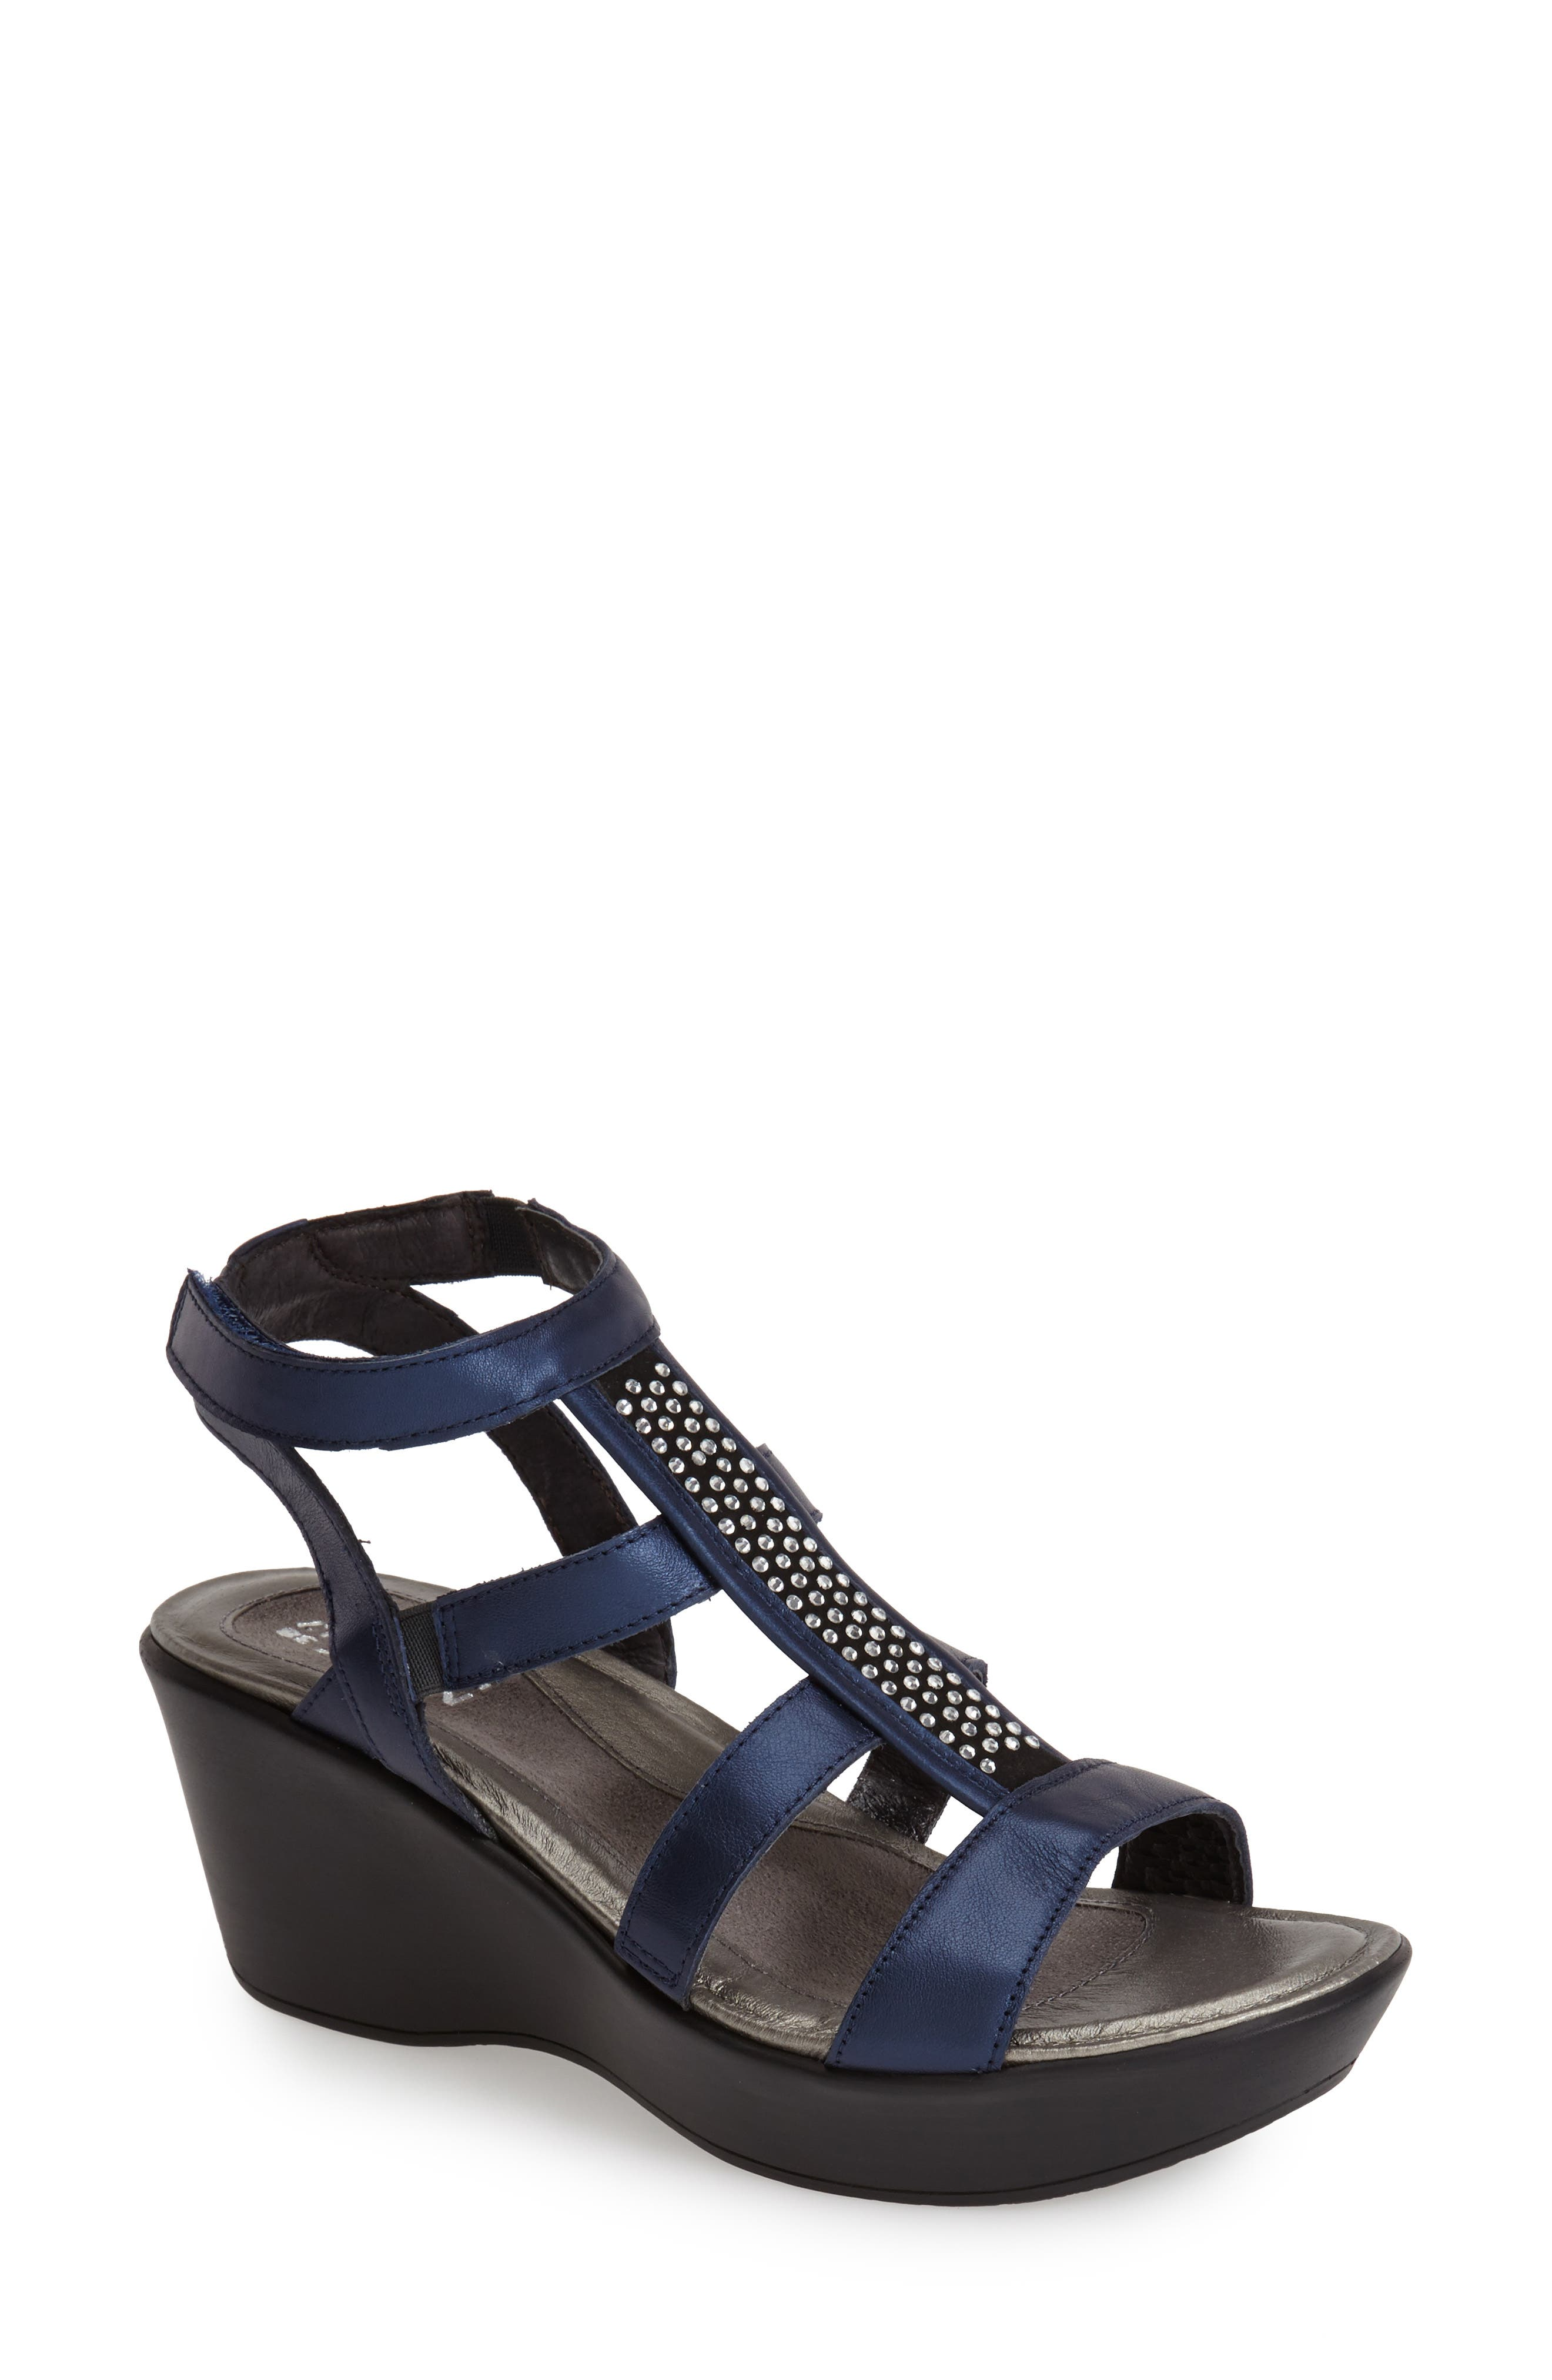 'Mystery' Platform Wedge Sandal,                             Alternate thumbnail 6, color,